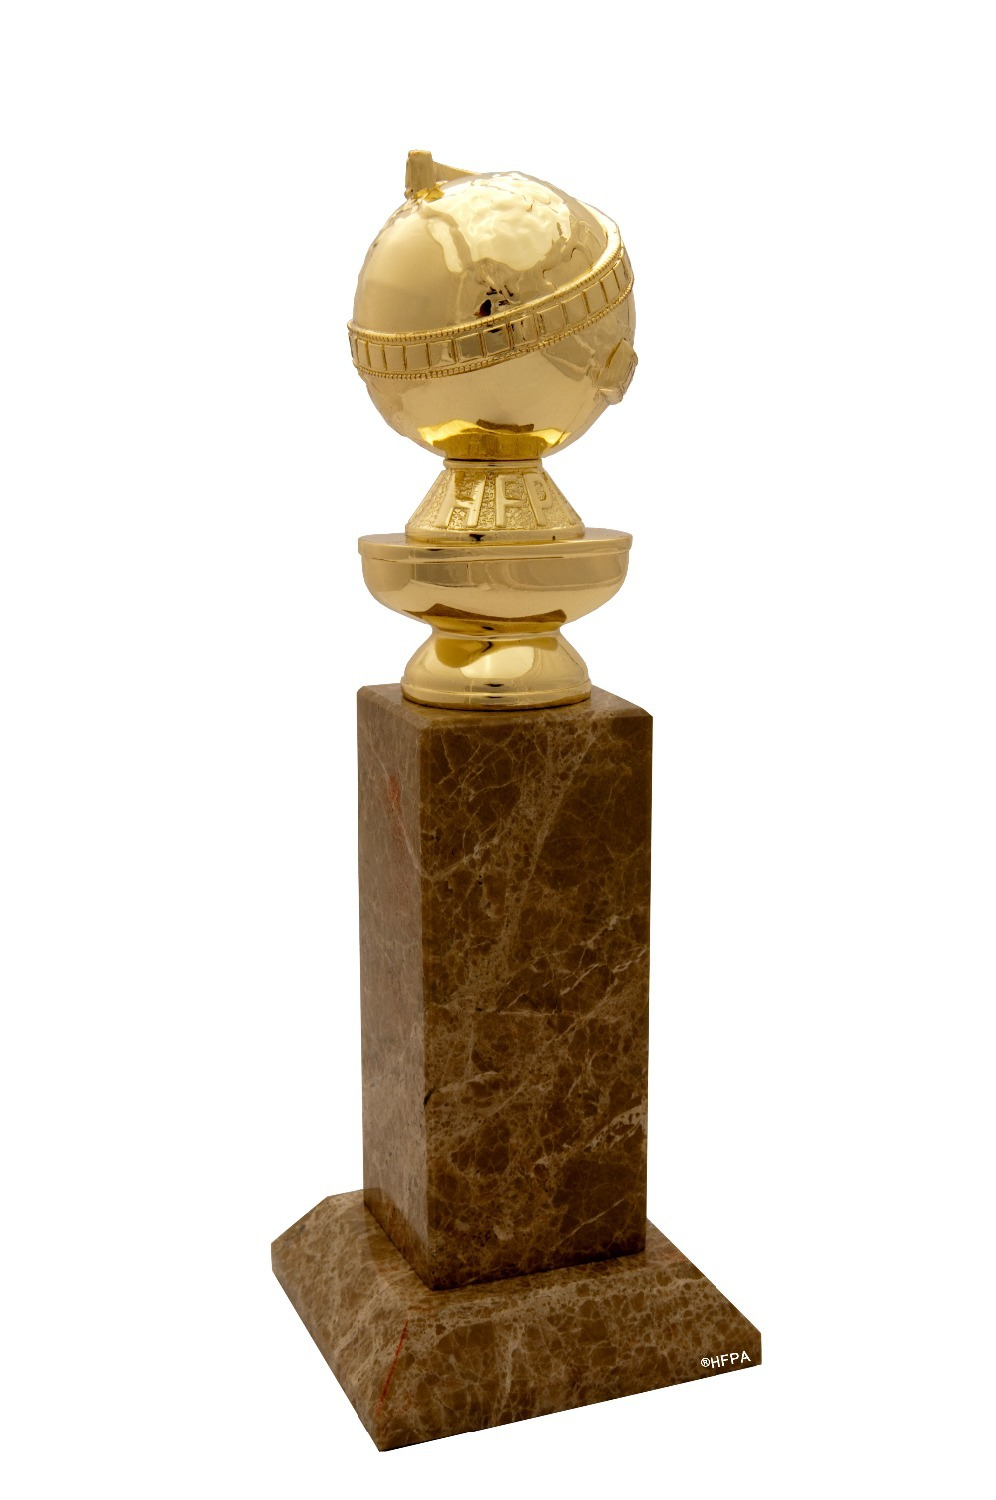 Golden Globe Awards Replica Zinc Alloy Trophy 10 Inches Via DHL